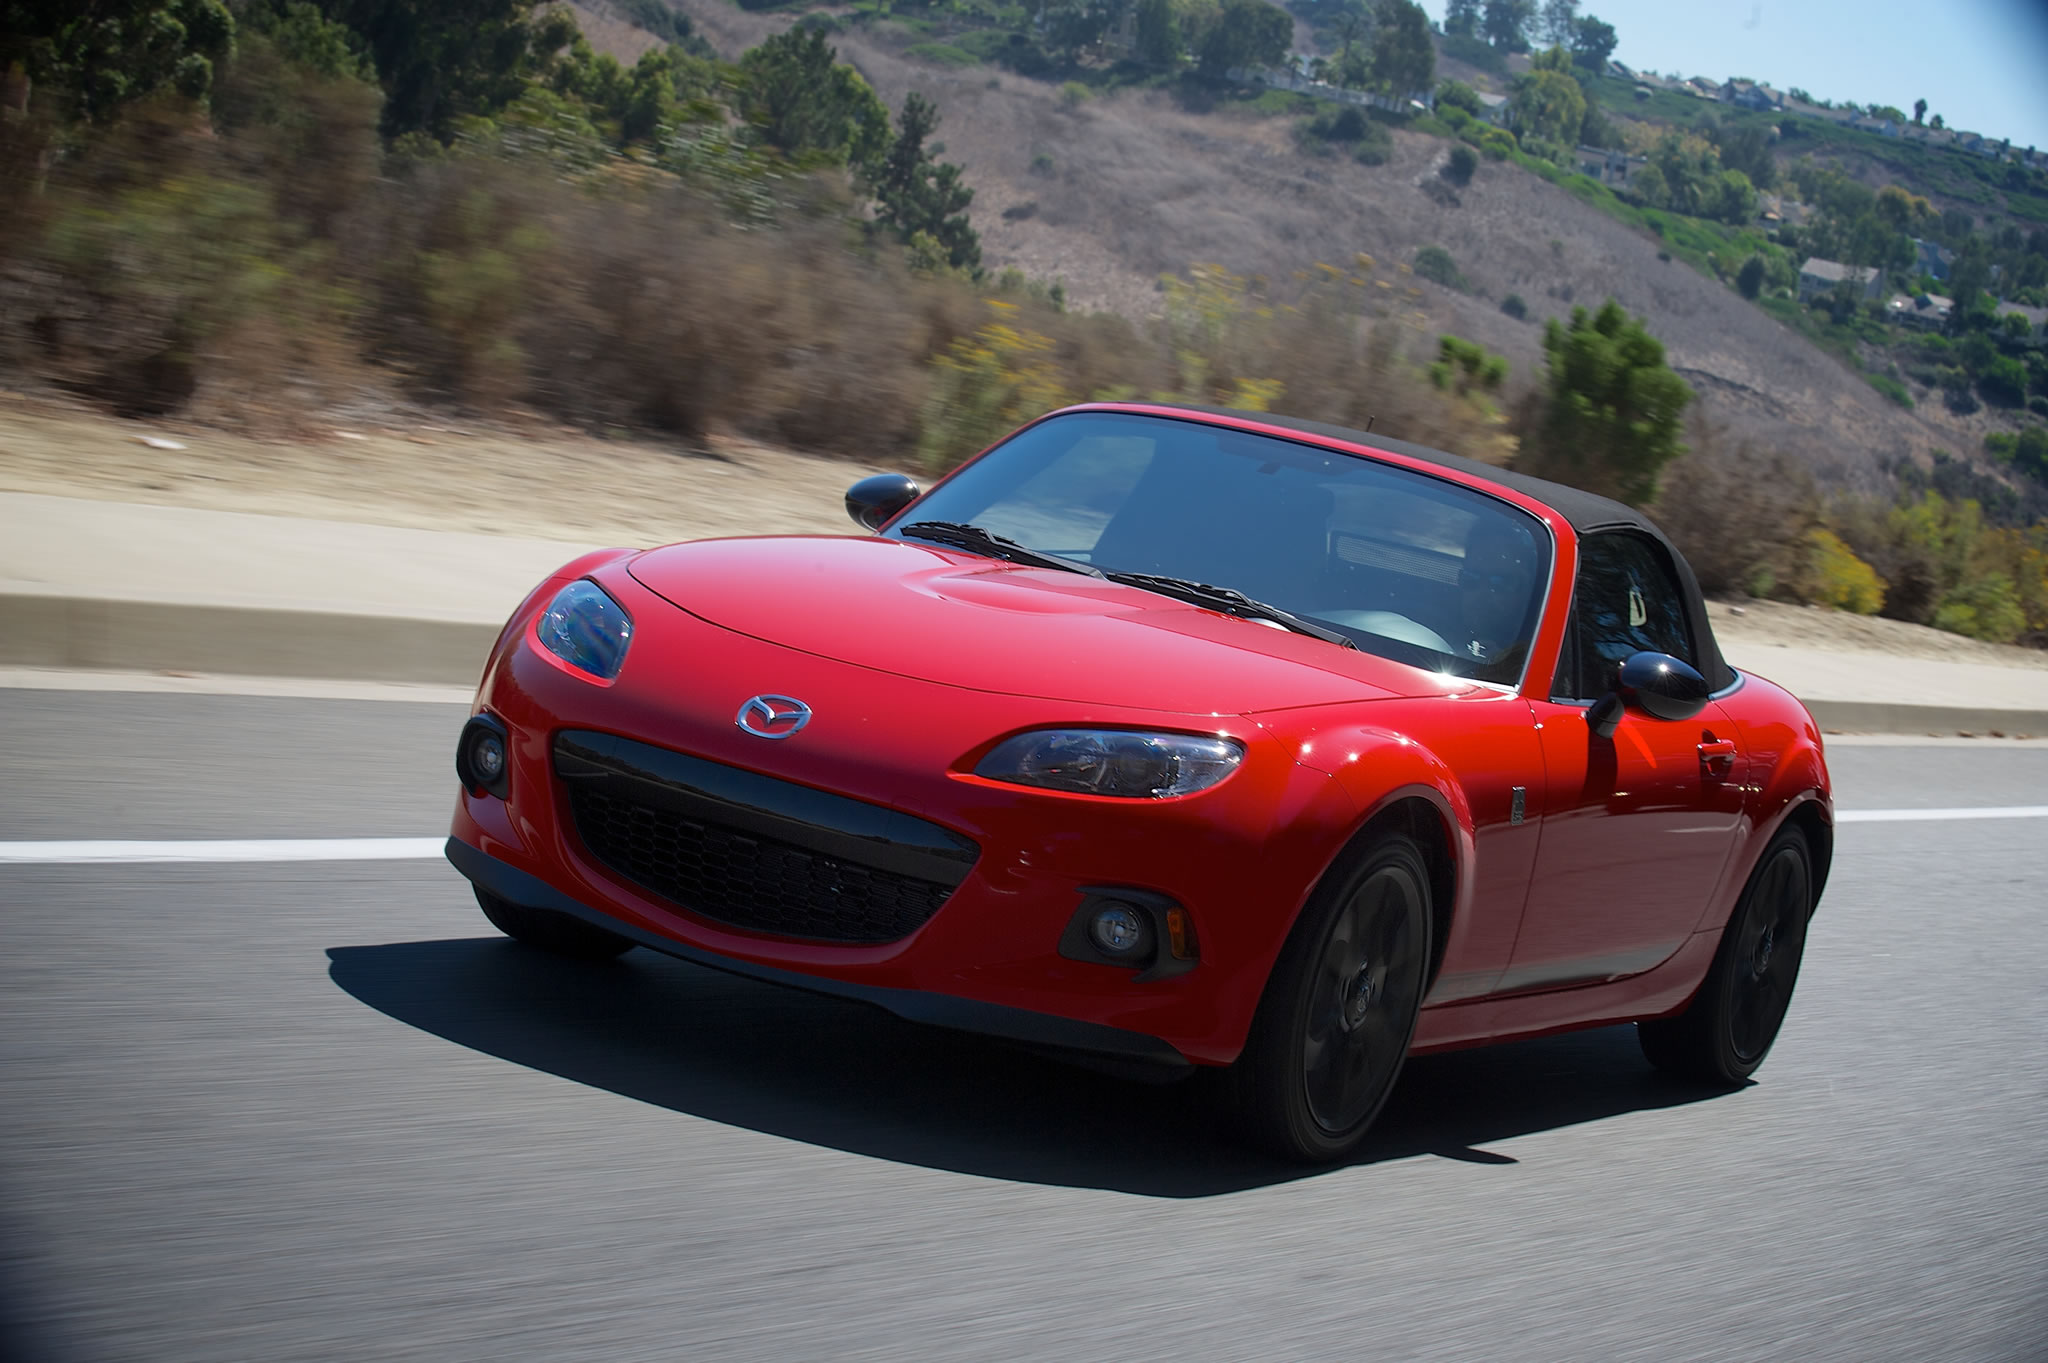 2015 mazda mx 5 miata club front photo true red paint size 2048 x 1363 nr 6 29. Black Bedroom Furniture Sets. Home Design Ideas